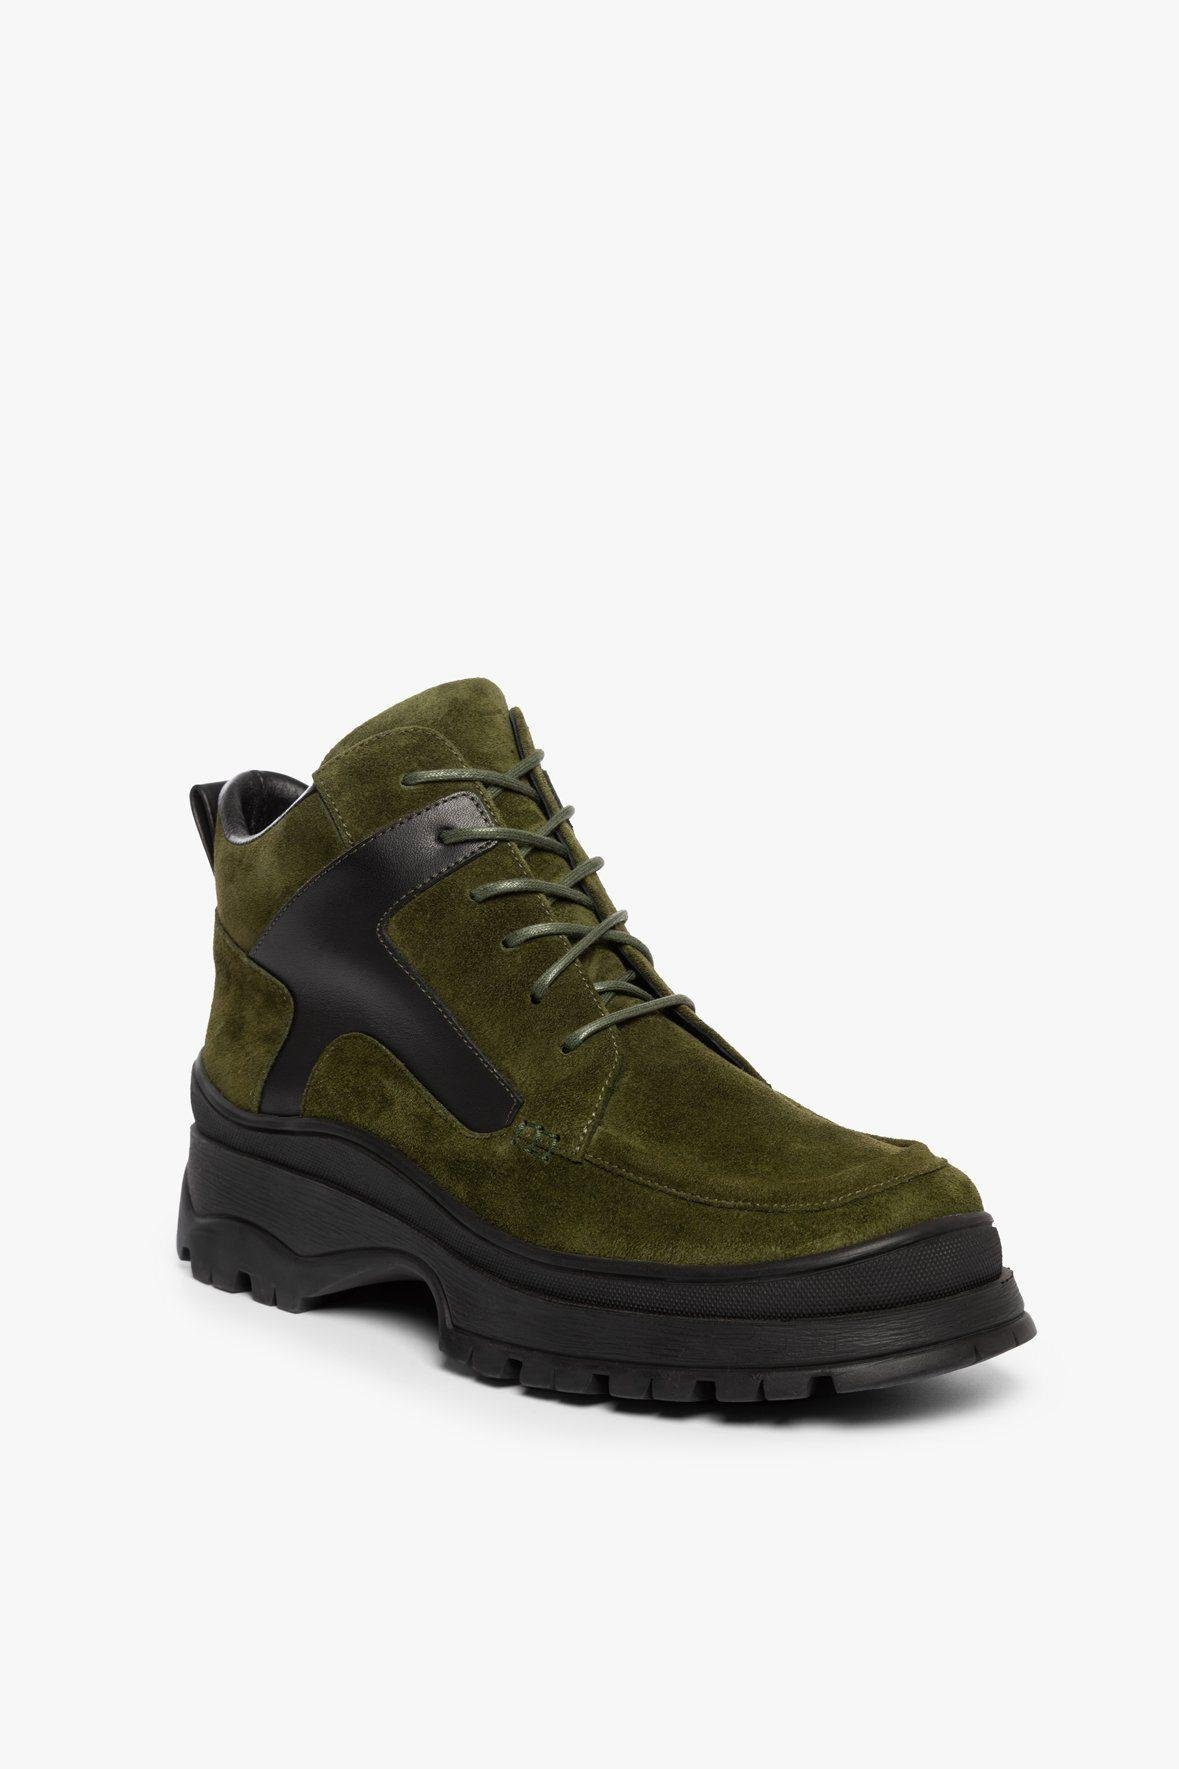 ROCKY BOOT | OLIVE SUEDE